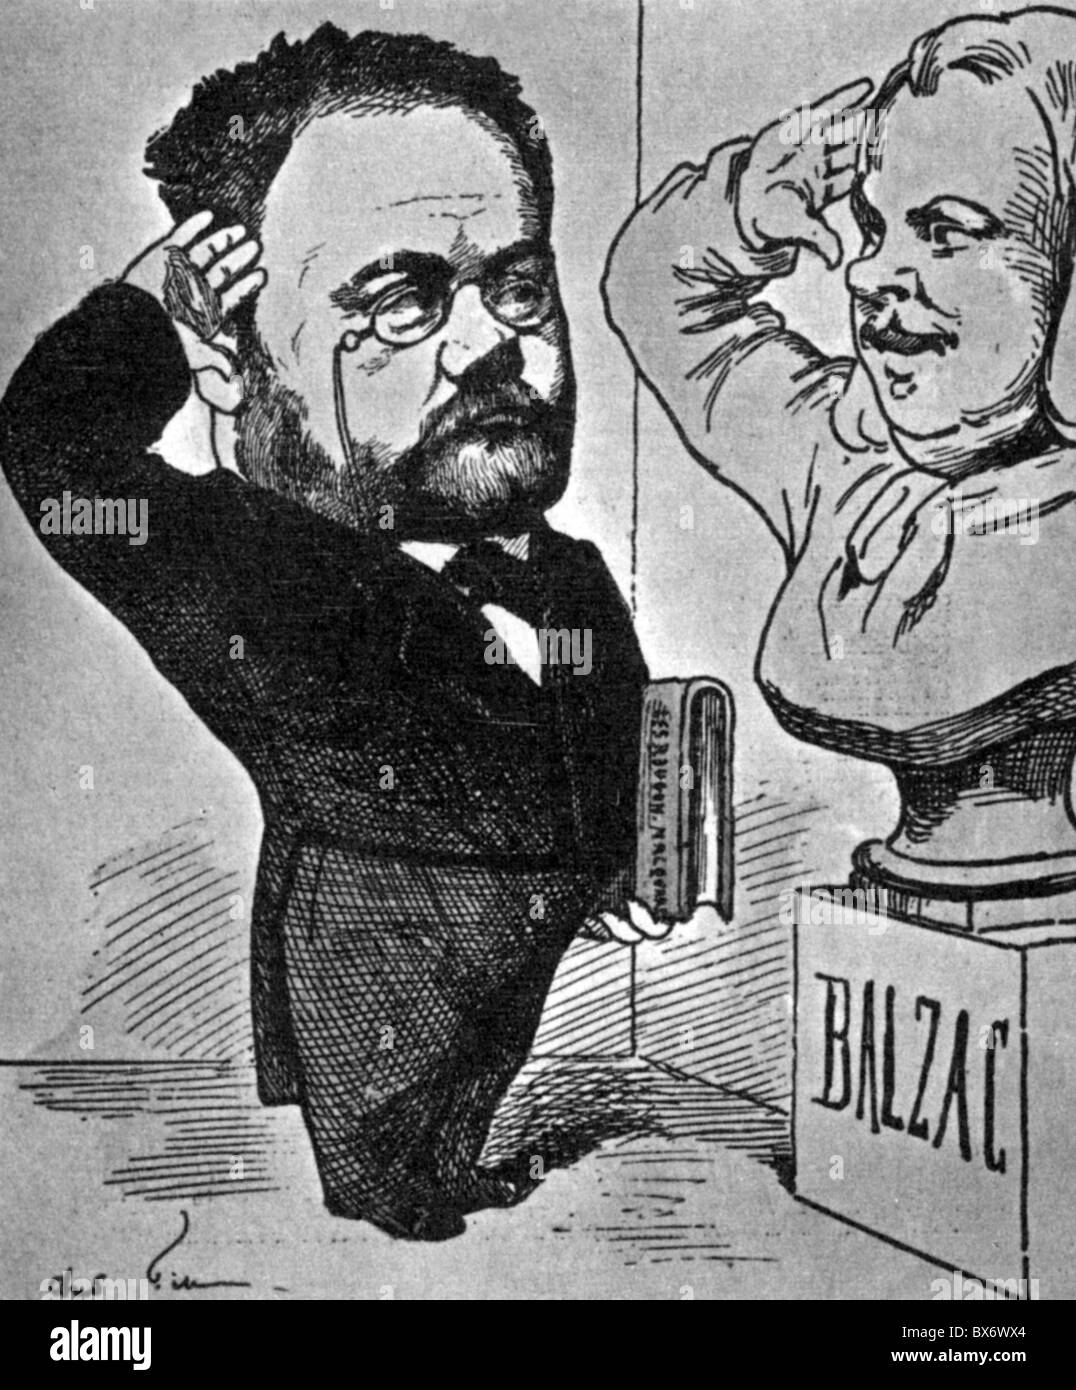 Zola, Emile, 2.4.1840 - 29.9.1902, French author / writer, caricature, saluting the bust of Honore de Balzac, 1878, - Stock Image